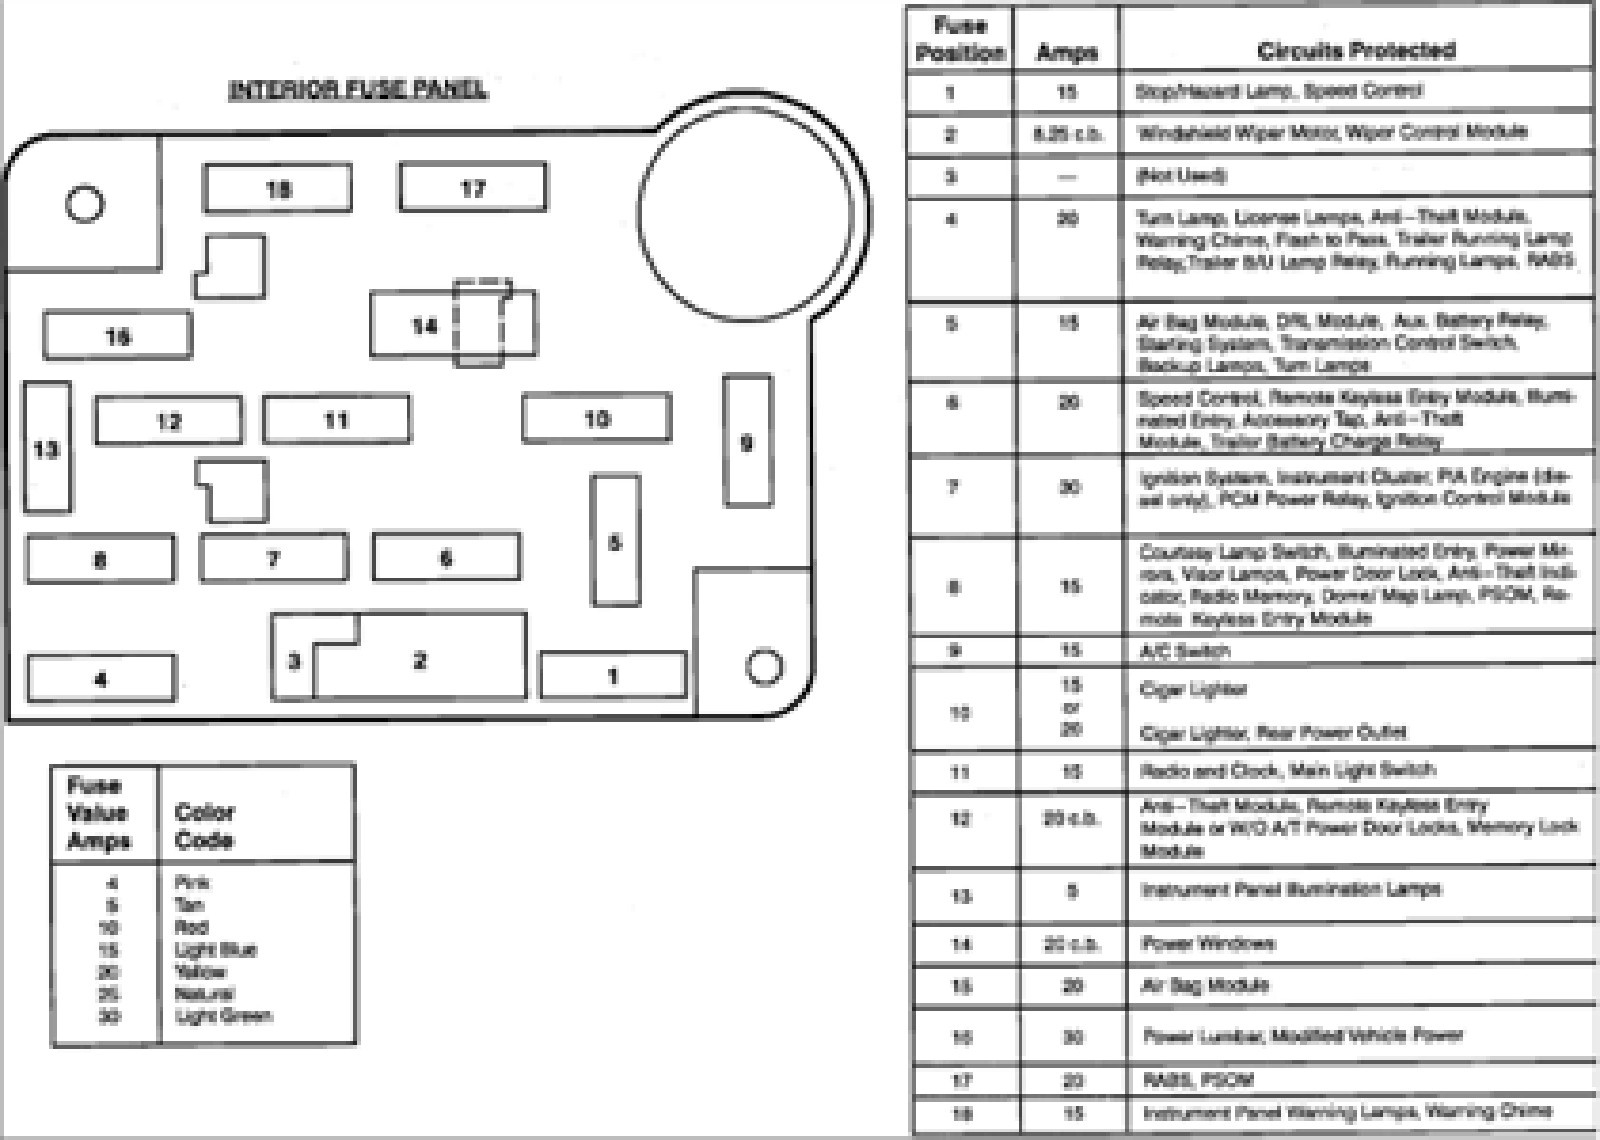 2008 Ford F150 Fuse Box Diagram E150 Fuse Diagram Wiring Diagram Directory